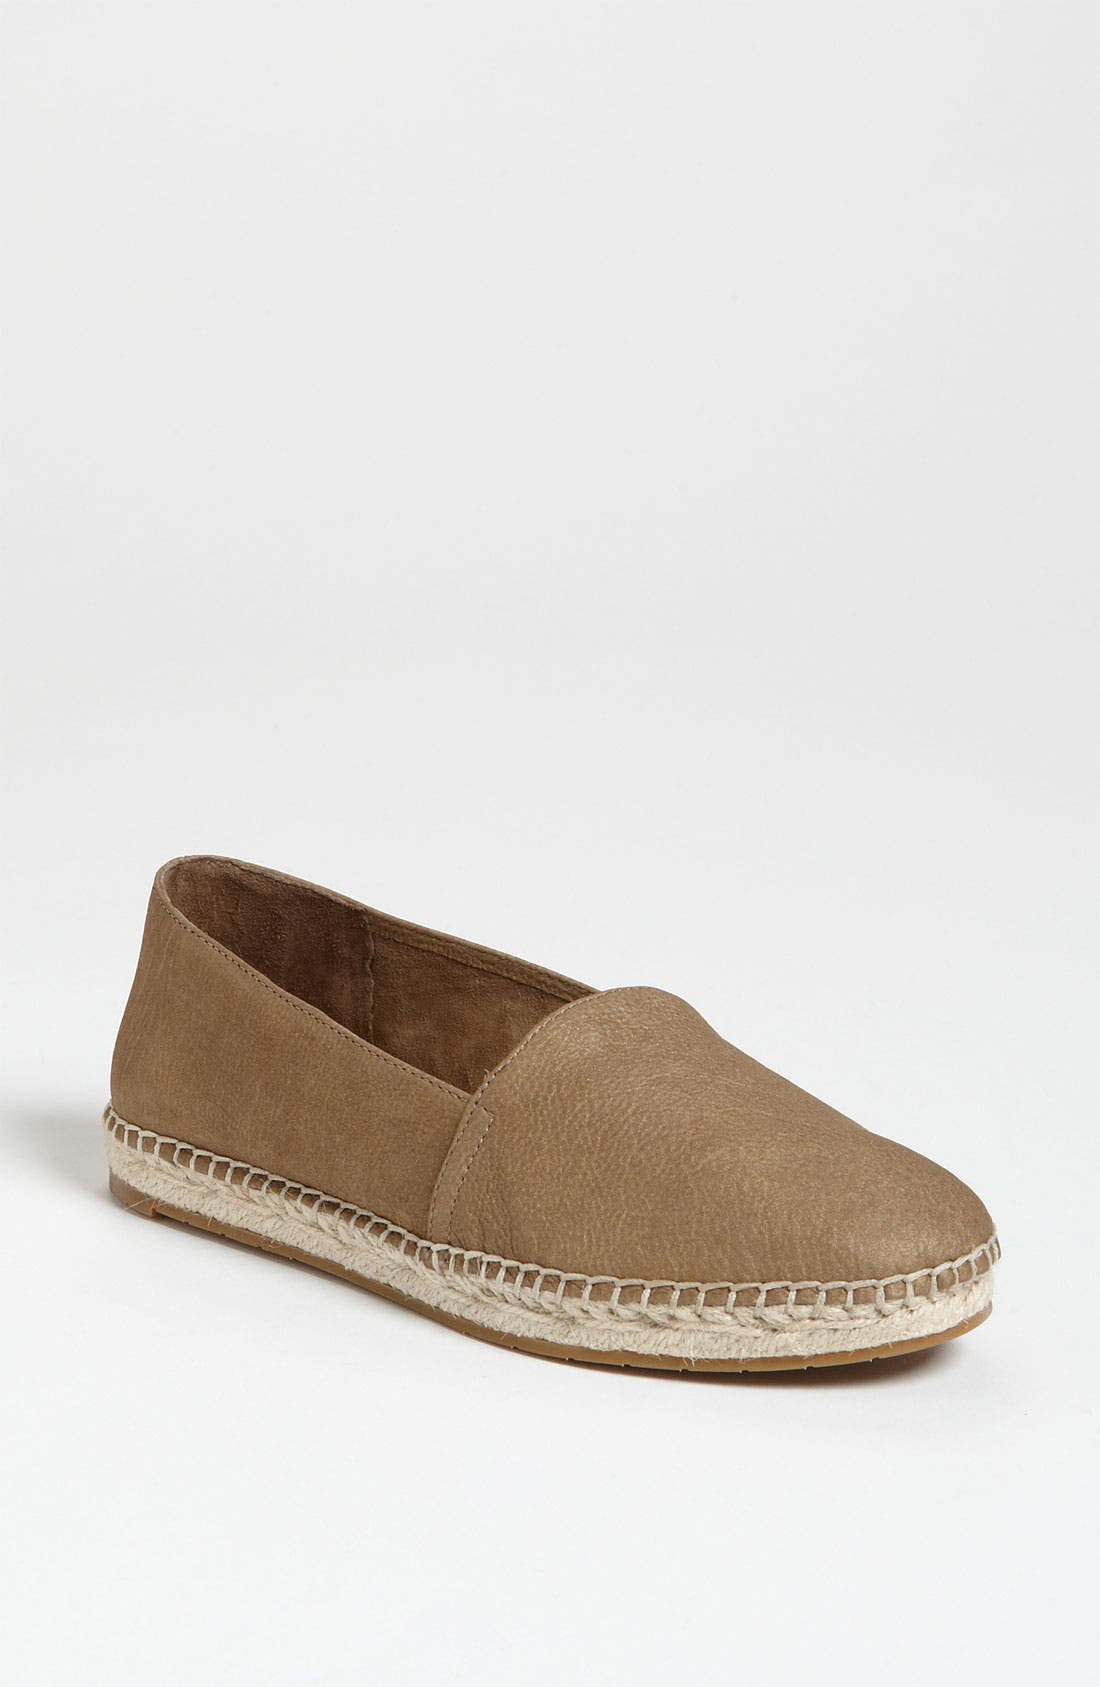 Alternate Image 1 Selected - Eileen Fisher 'Glide' Loafer